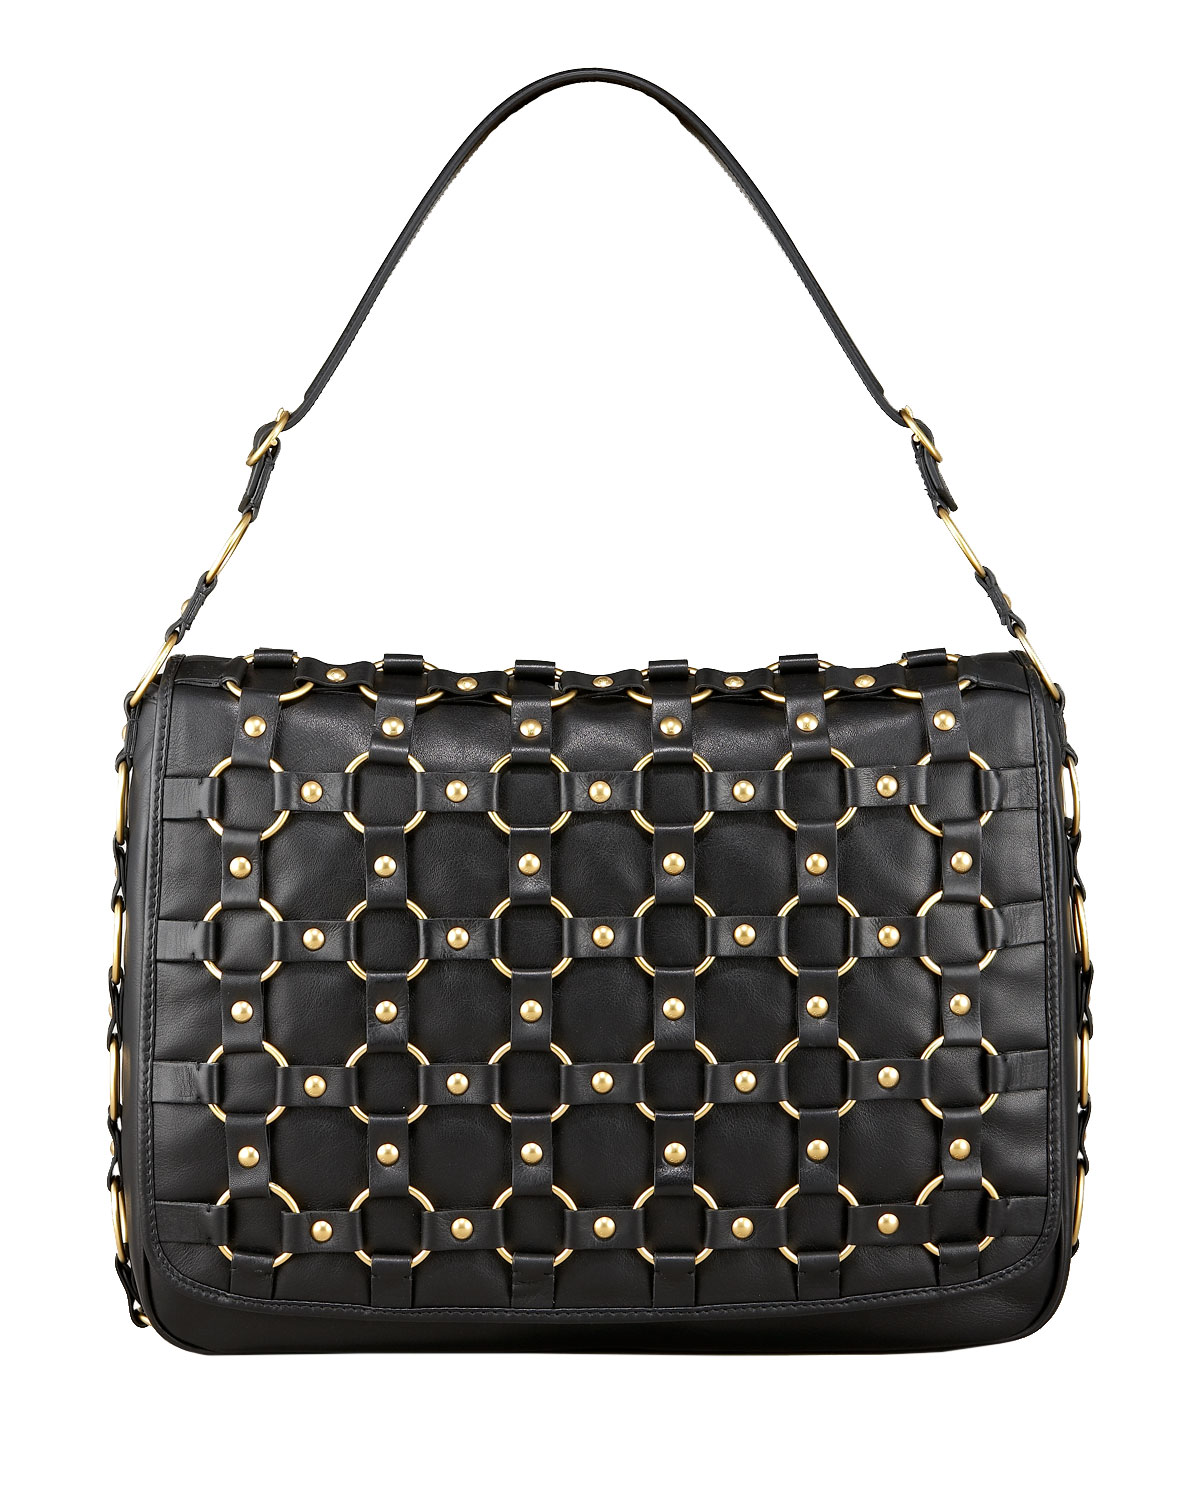 Croisette Shoulder Flap Bag - Dior - Bergdorf Goodman from bergdorfgoodman.com